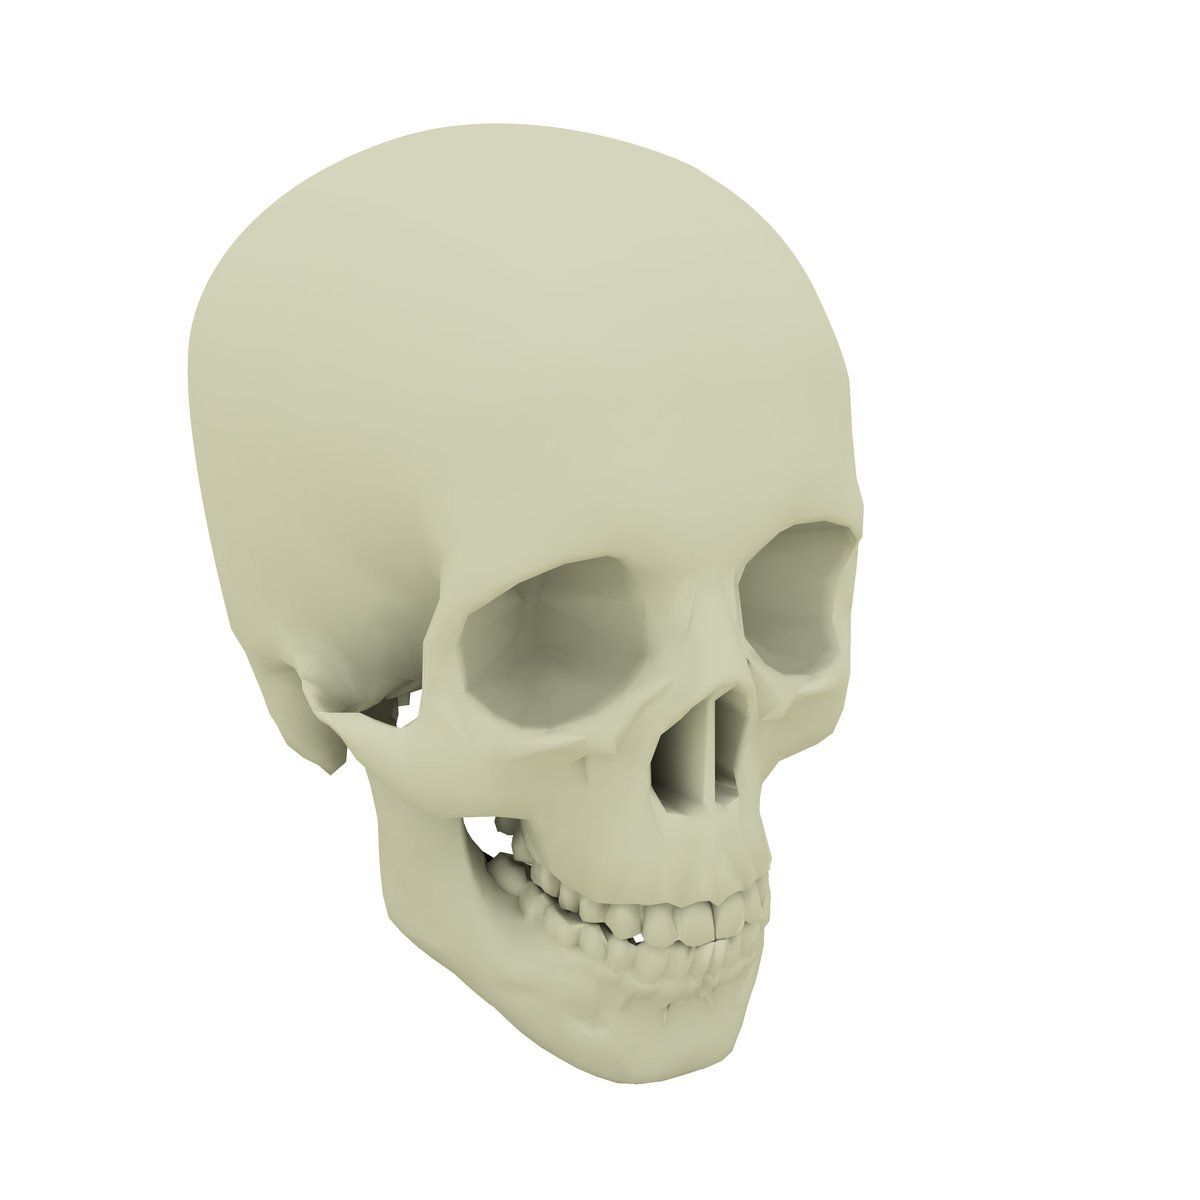 Free skull 3d 1 Stock Photo - FreeImages com